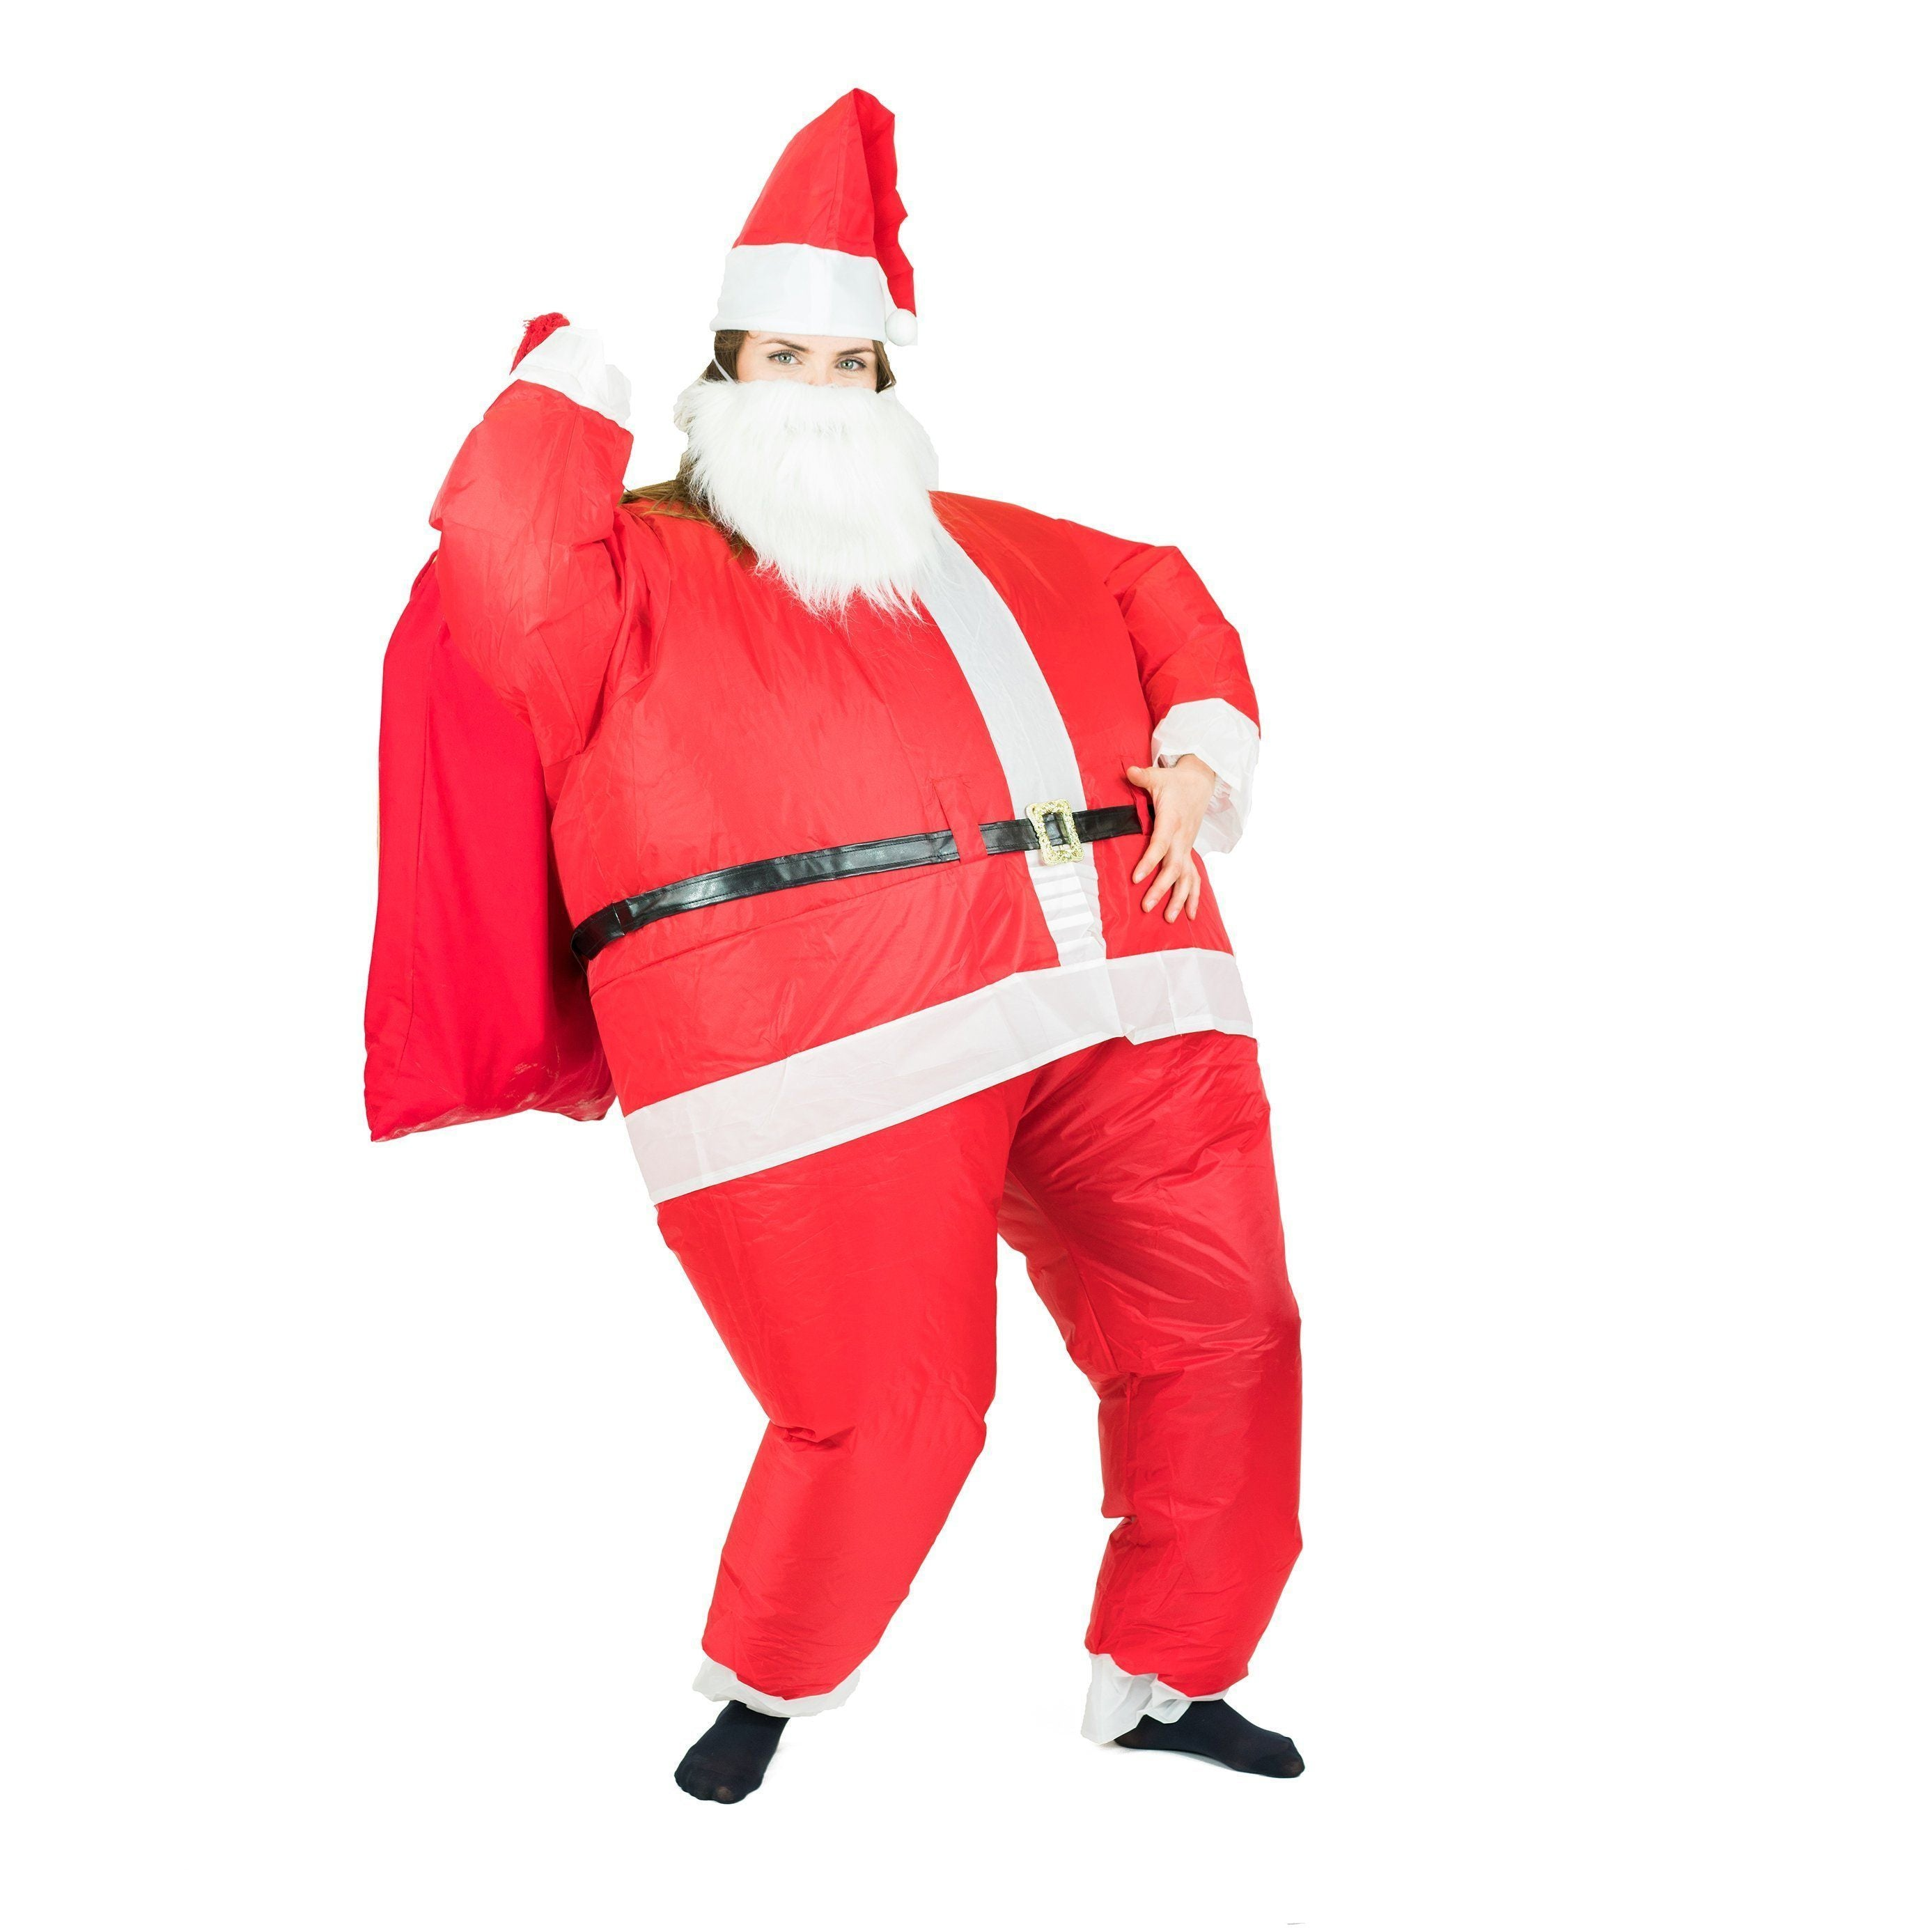 Fancy Dress - Inflatable Santa Costume